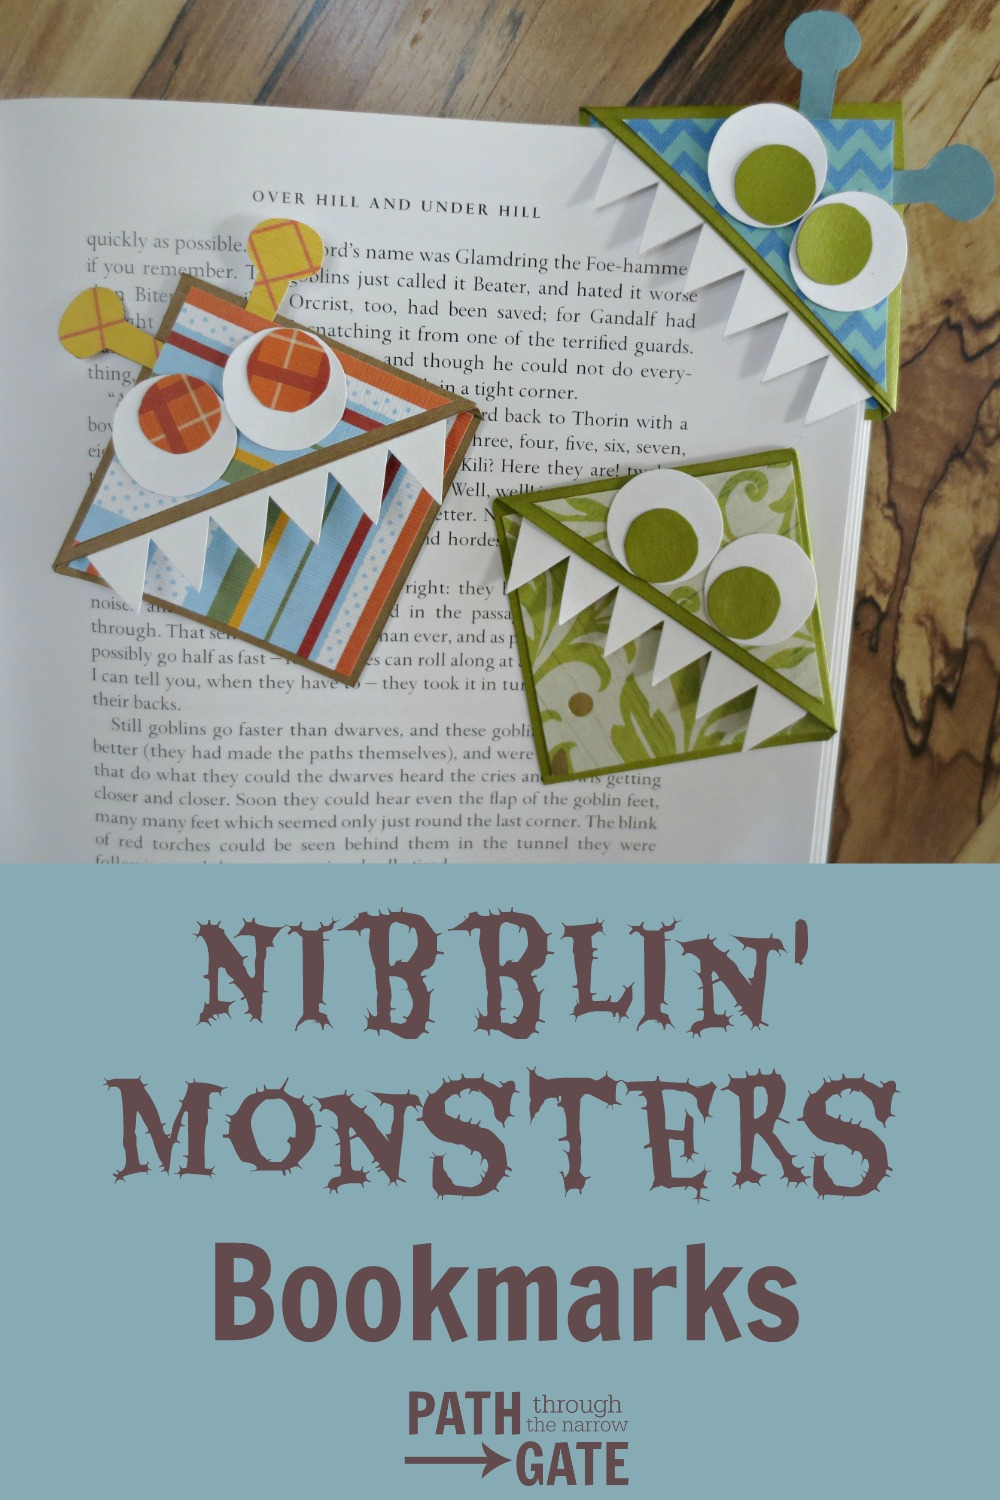 Do you have a hard time finding your place in your book? Are you always short on good bookmarks? These adorable Nibblin' Monsters Bookmarks are fun to make and fun to use! Try them today!